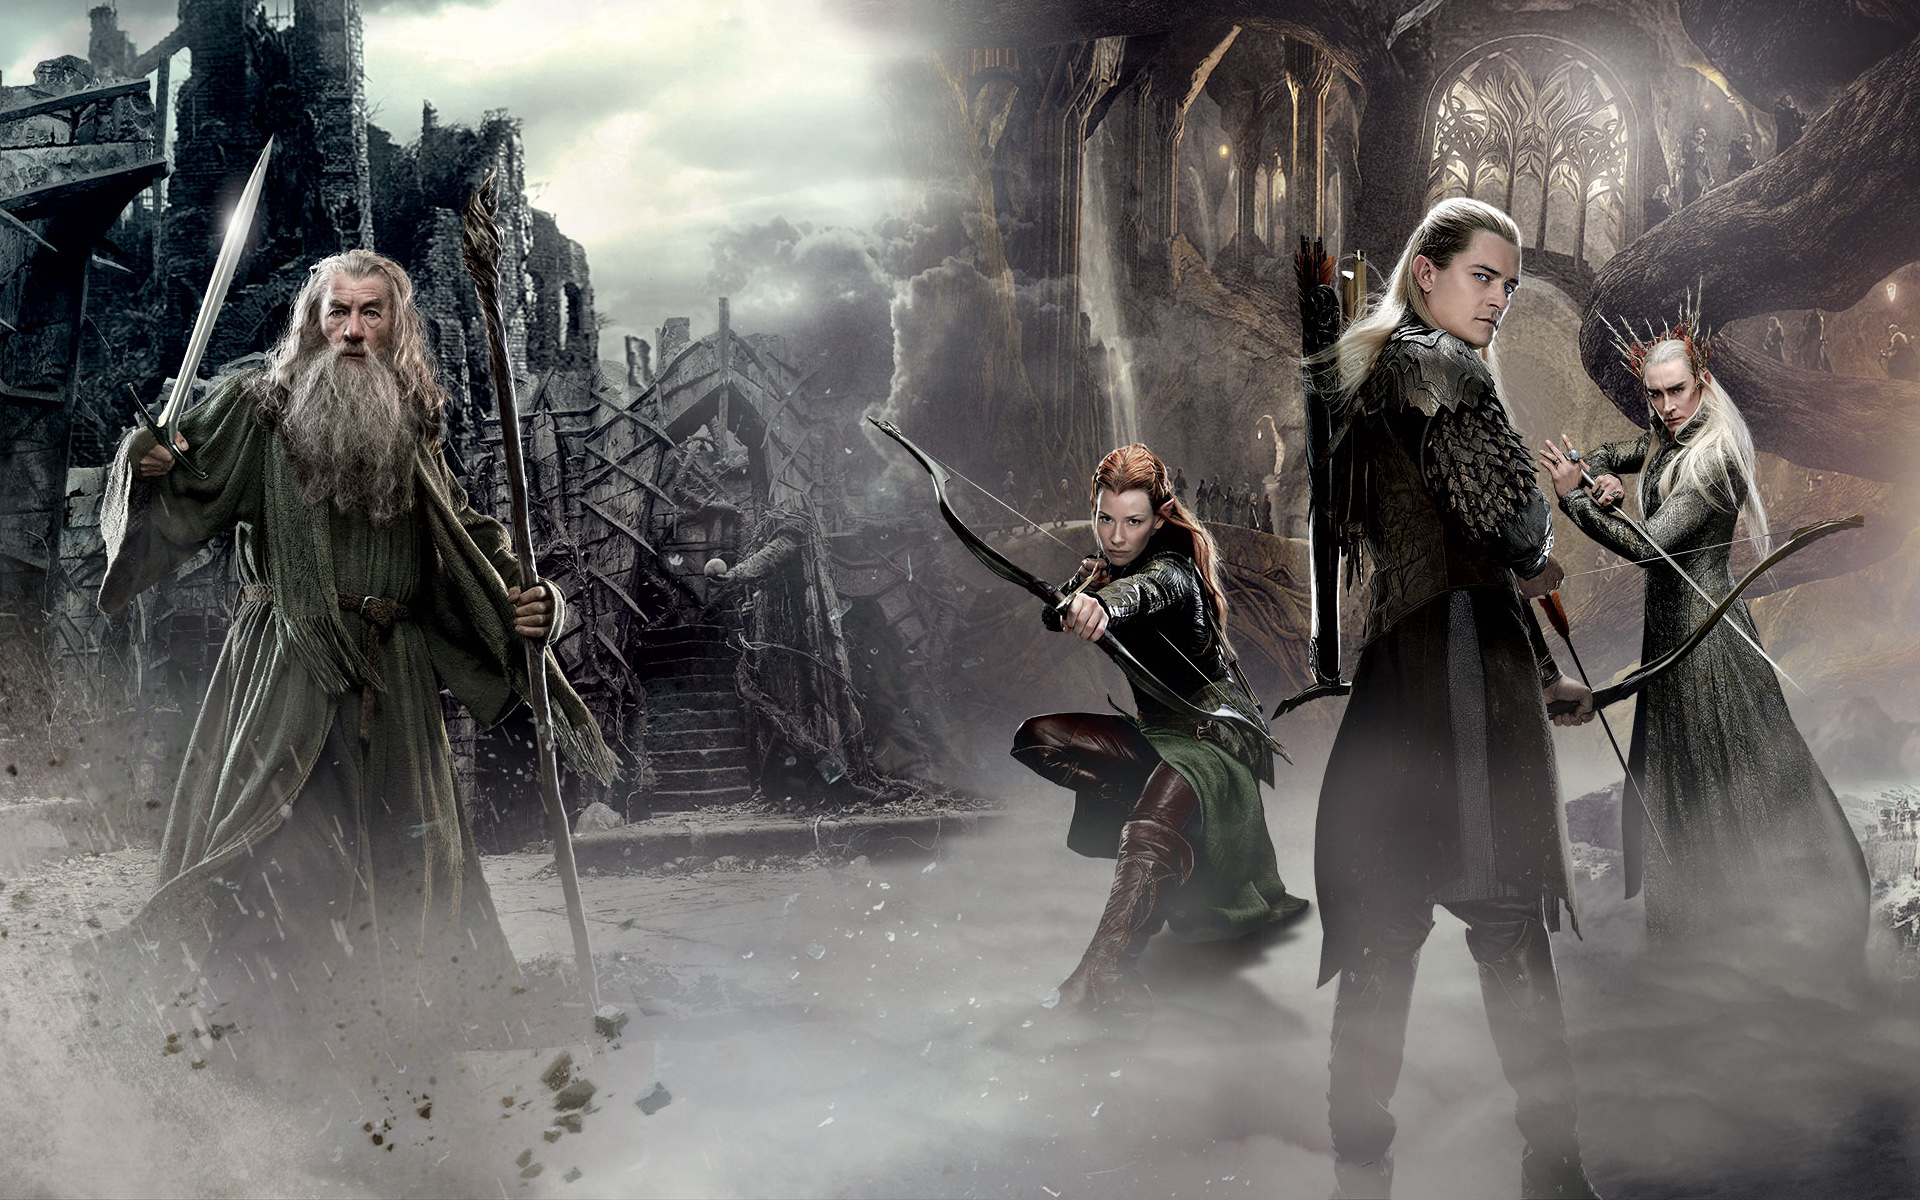 the hobbit 2 gandalf Legolas Tauriel poster film 2014 1920x1200